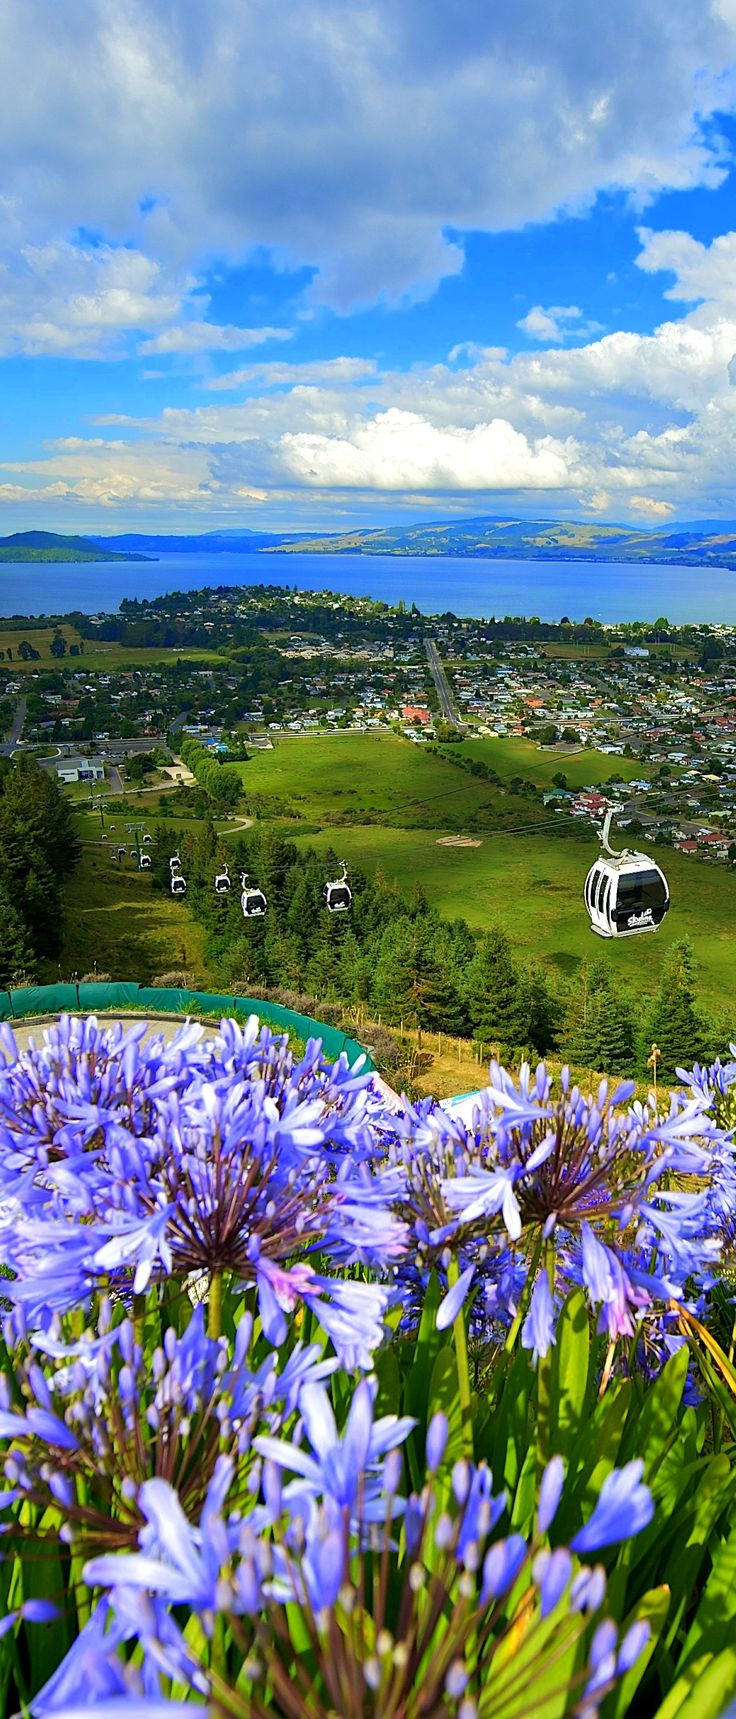 Located high on Mount Ngongotaha Skyline Rotorua offers stunning views overlooking the city and Lake Rotorua, NZ